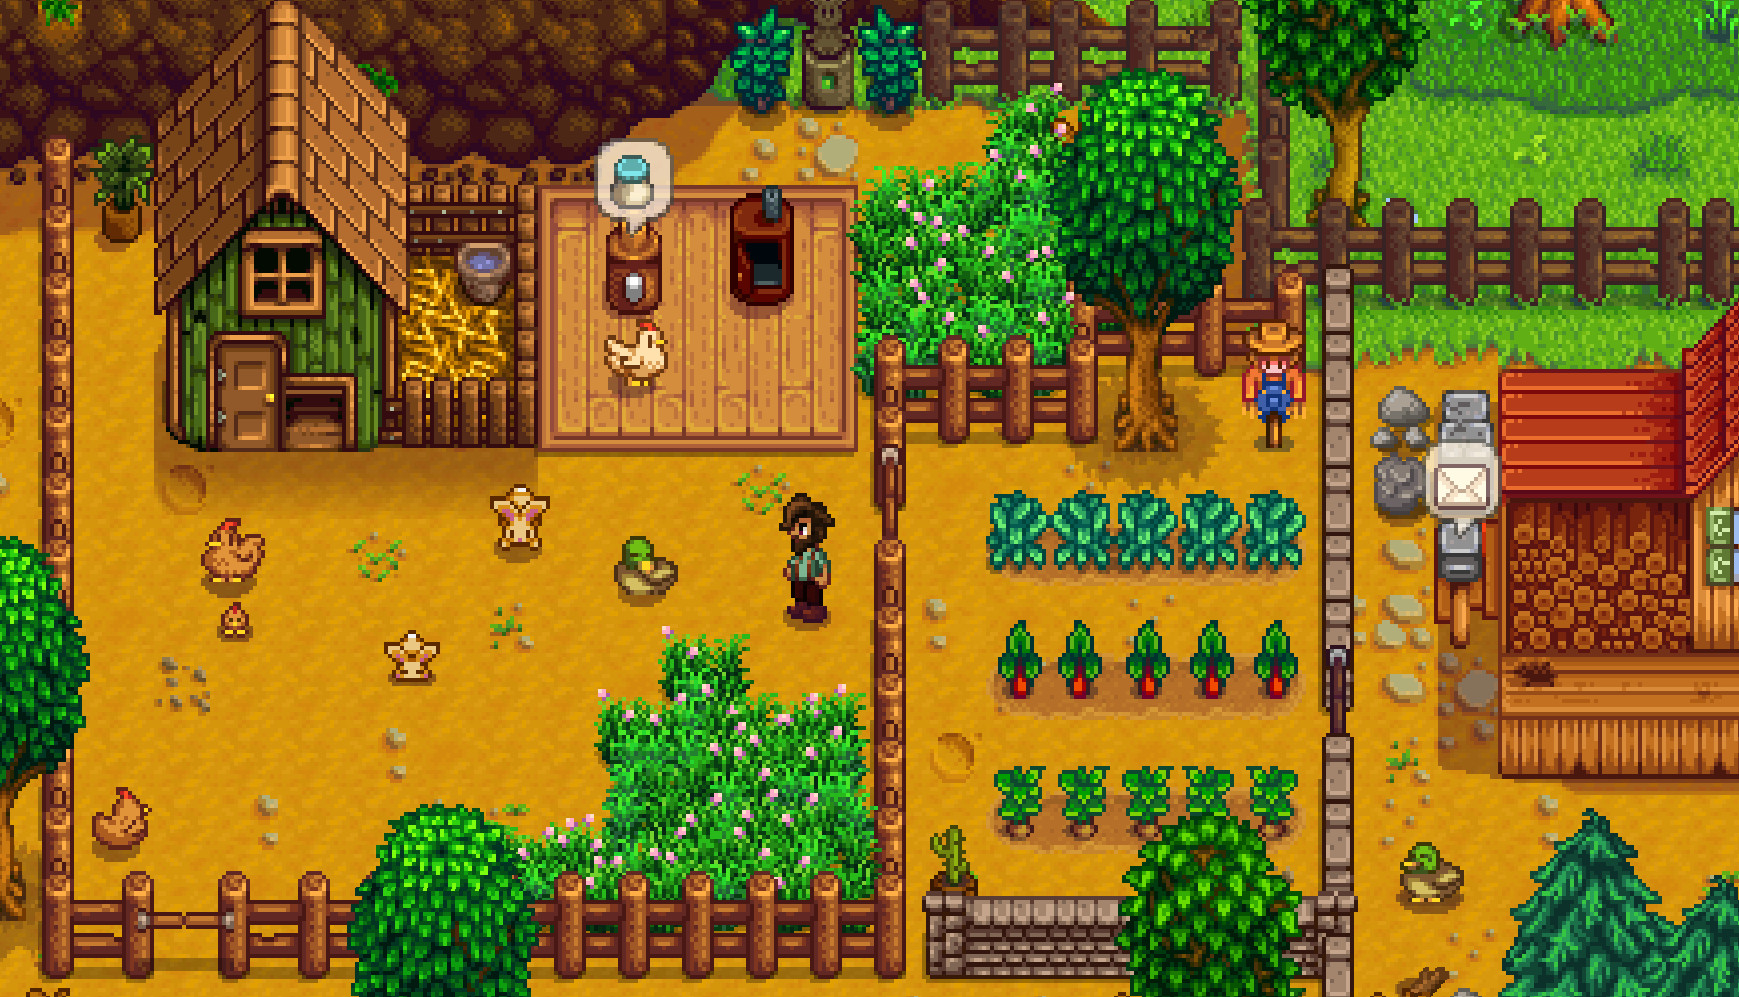 Photo of Stardew Valley with a selling record of 3.5 million copies